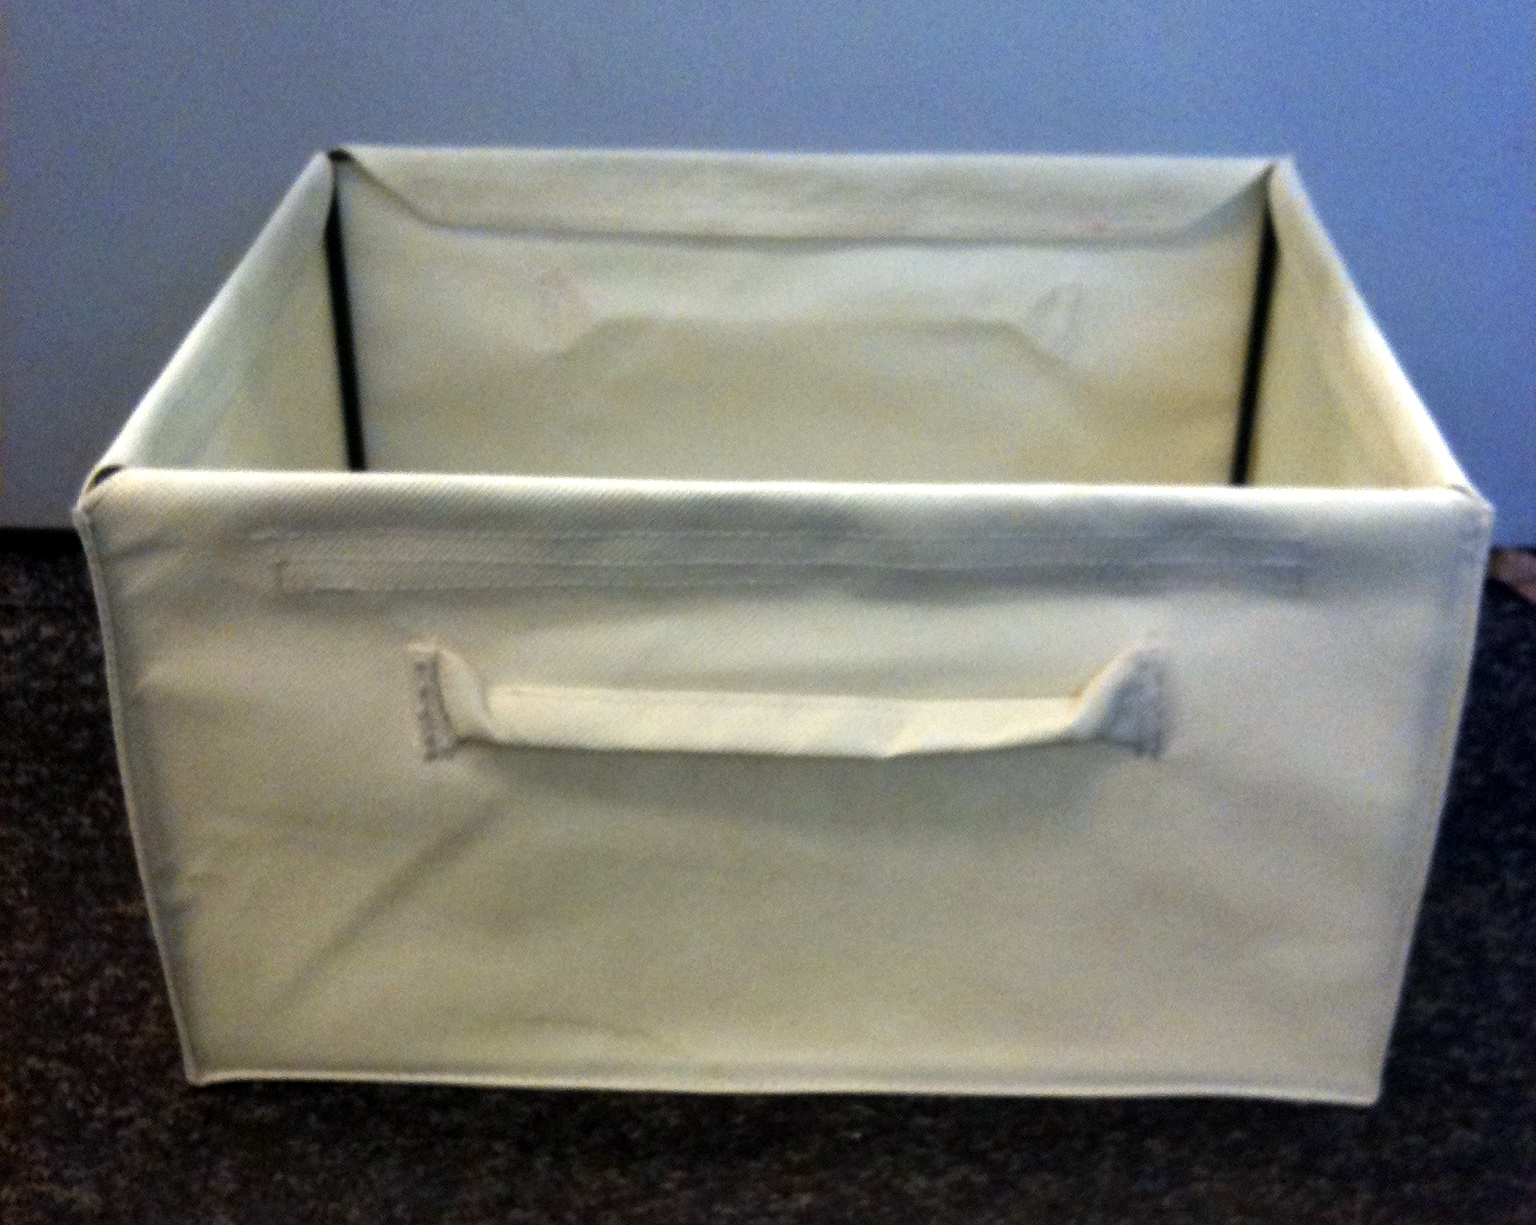 Canvas Storage Boxes For Wardrobes: SET OF 10 CANVAS STORAGE BOXES. UNDERBED. WARDROBES